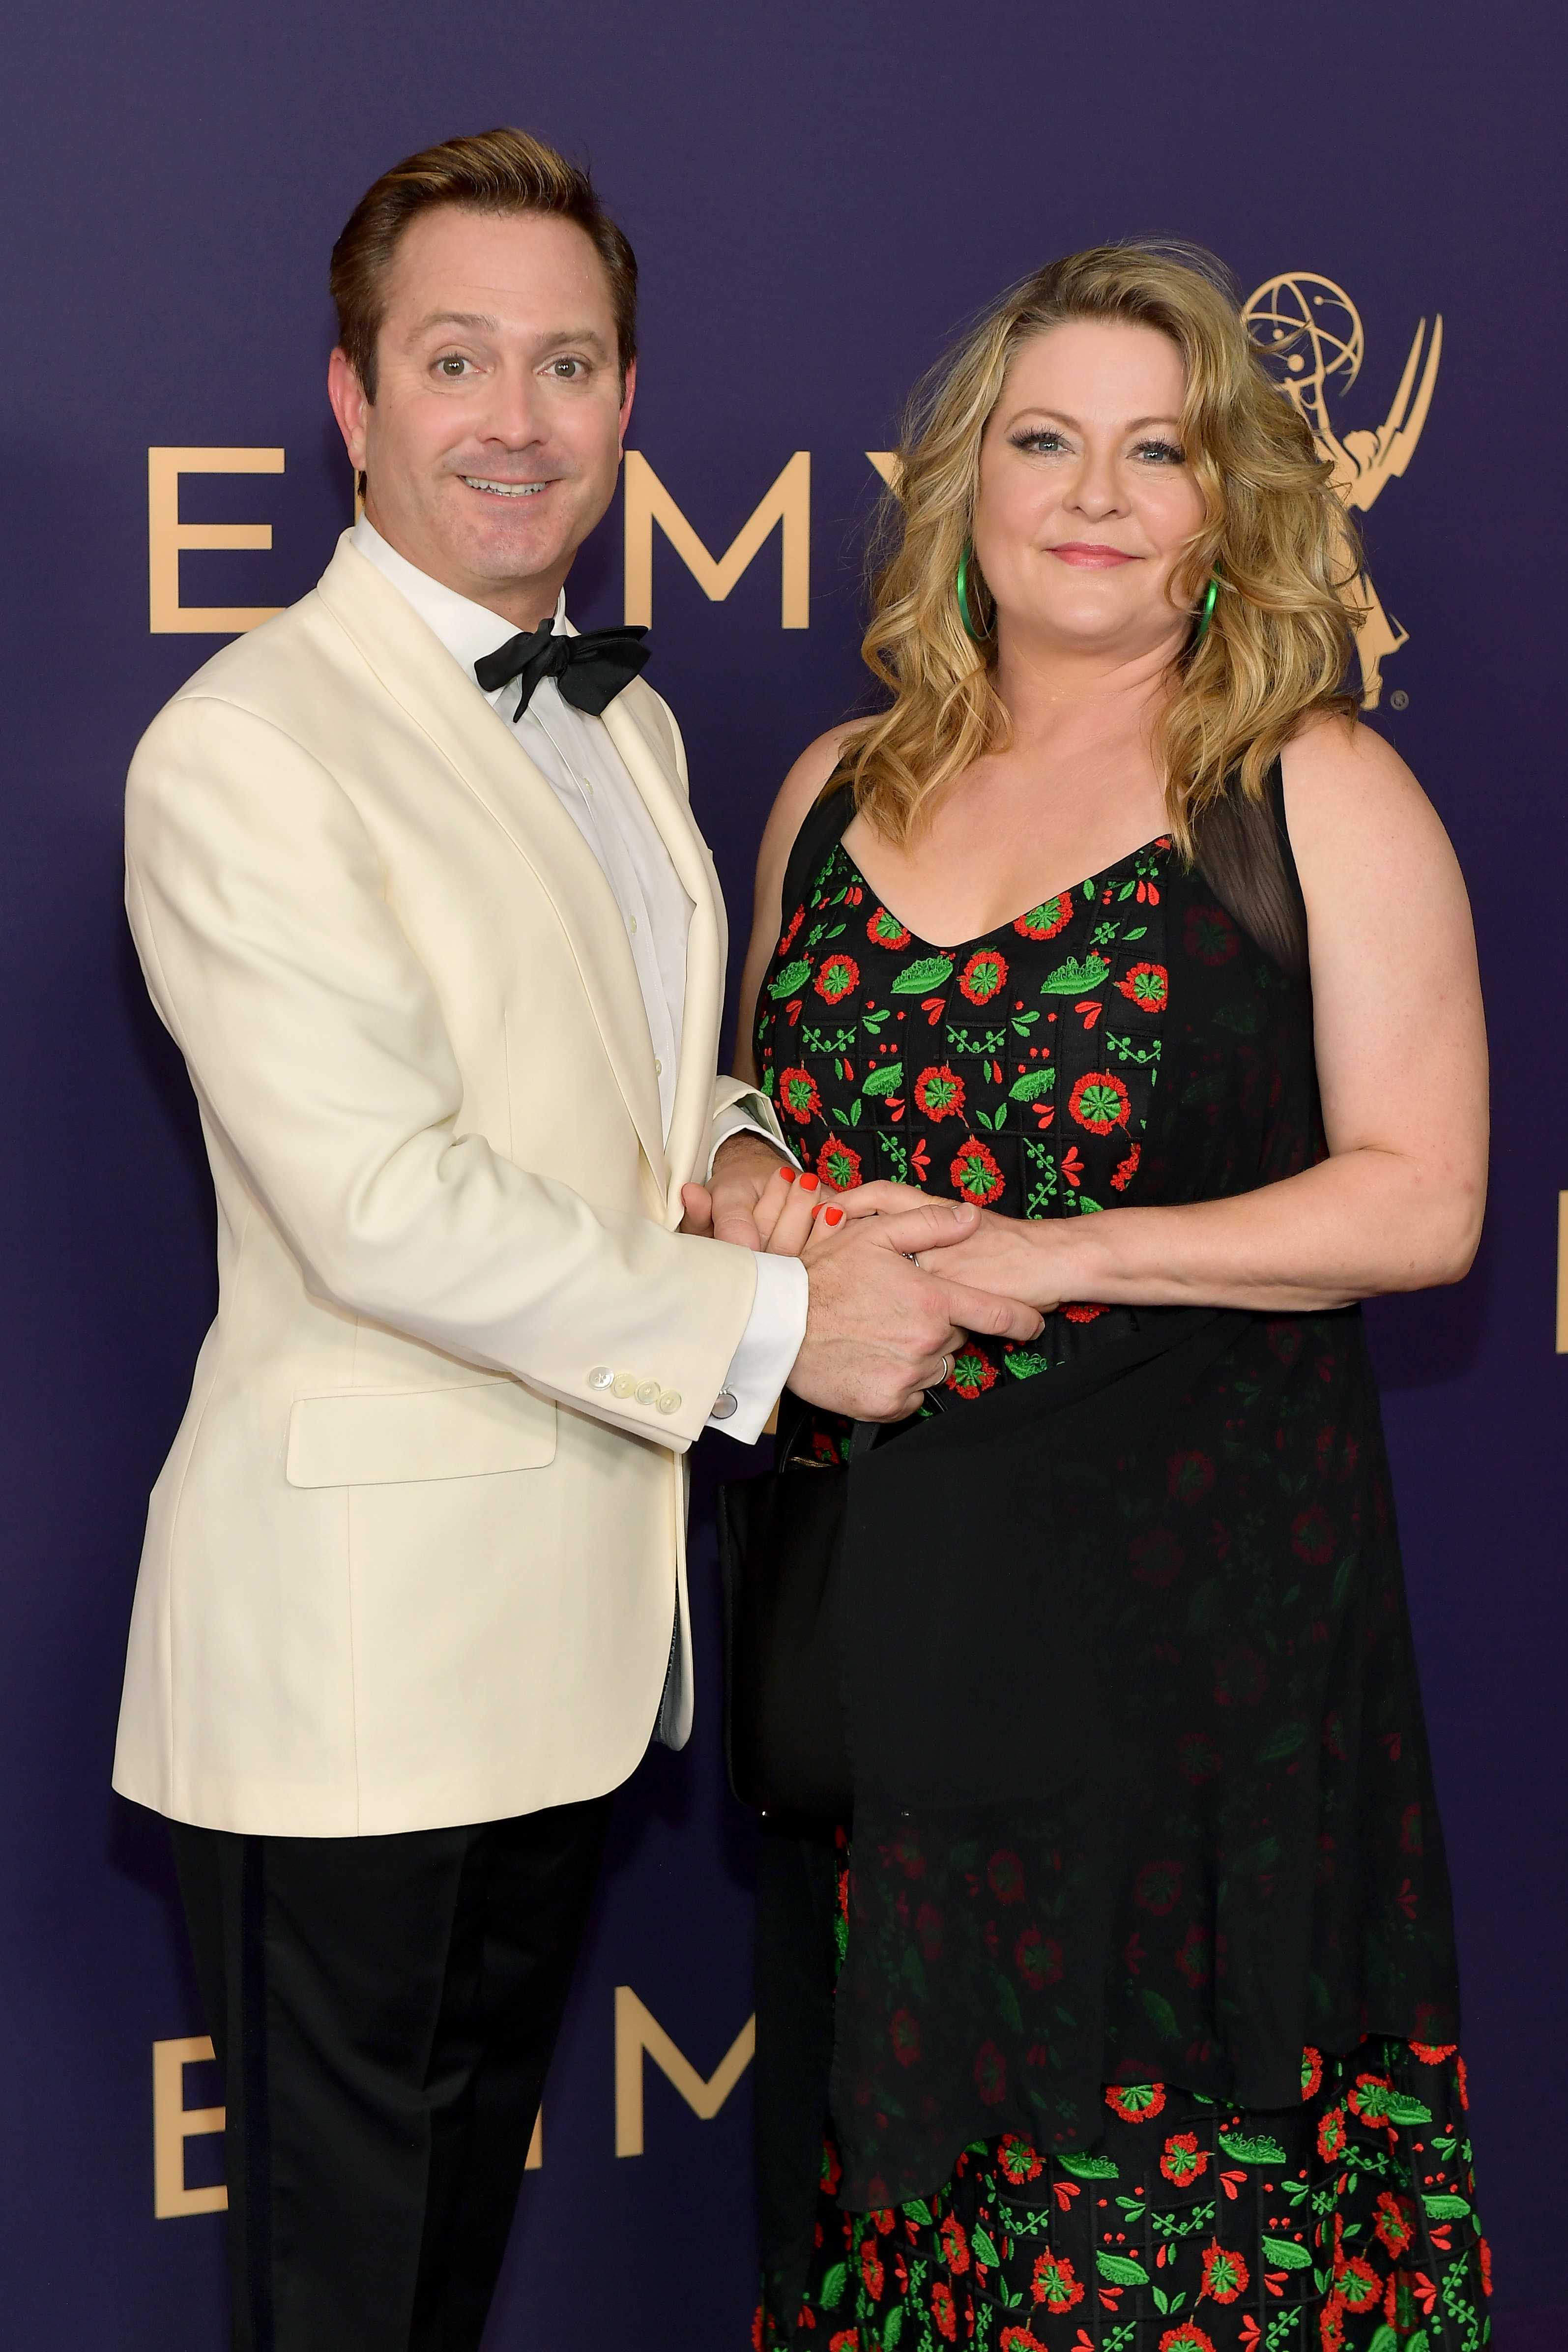 Thomas Lennon and Jenny Robertson attend the 71st Emmy Awardsvin Los Angeles, California.